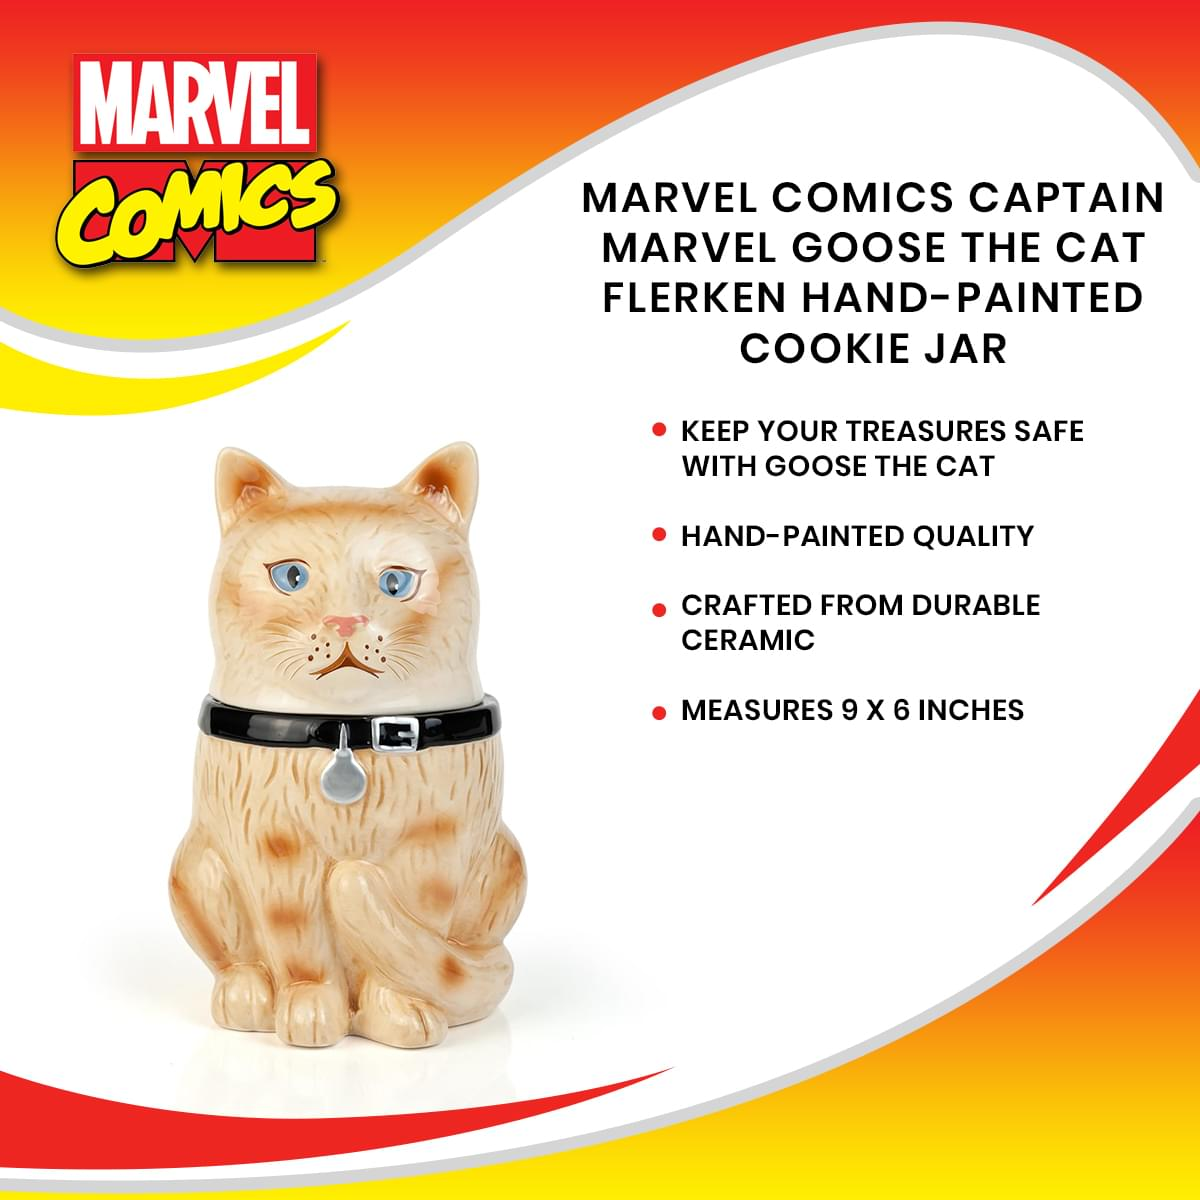 Marvel Comics Captain Marvel Goose The Cat Flerken Hand-Painted Cookie Jar